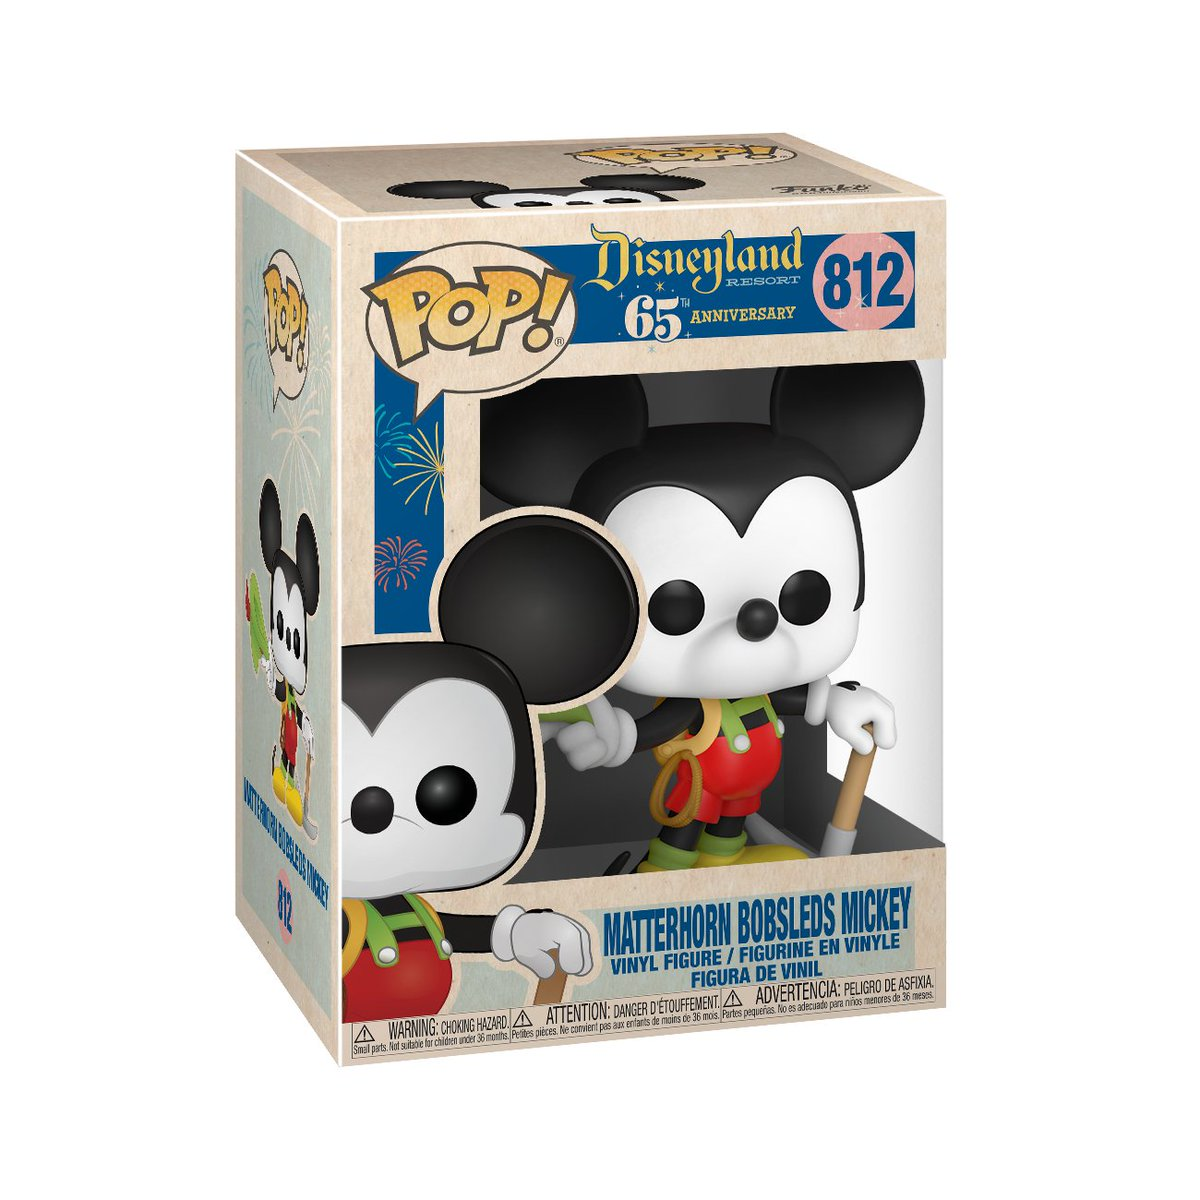 RT & Follow @OriginalFunko for the chance to win this Disneyland 65th Anniversary Matterhorn Bobsleds Mickey Mouse Pop! https://t.co/n8RAVqIau3 #Funko #FunkoGiveaway #Giveaway https://t.co/ACE9BdnDaG